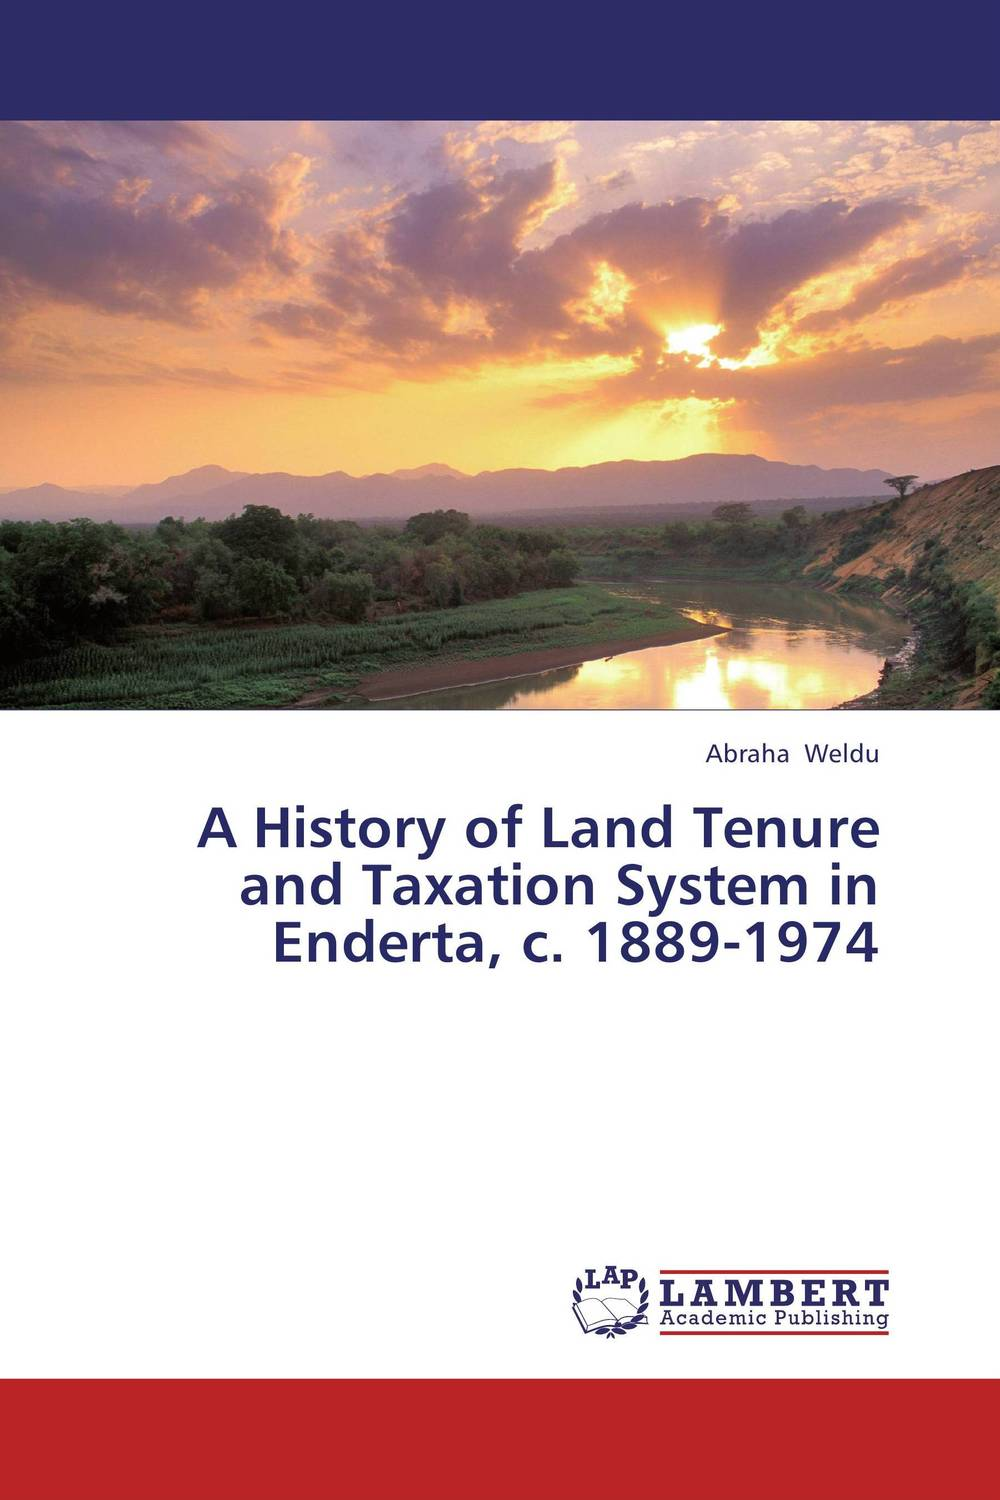 Фото A History of Land Tenure and Taxation System in Enderta, c. 1889-1974 cervical cancer in amhara region in ethiopia